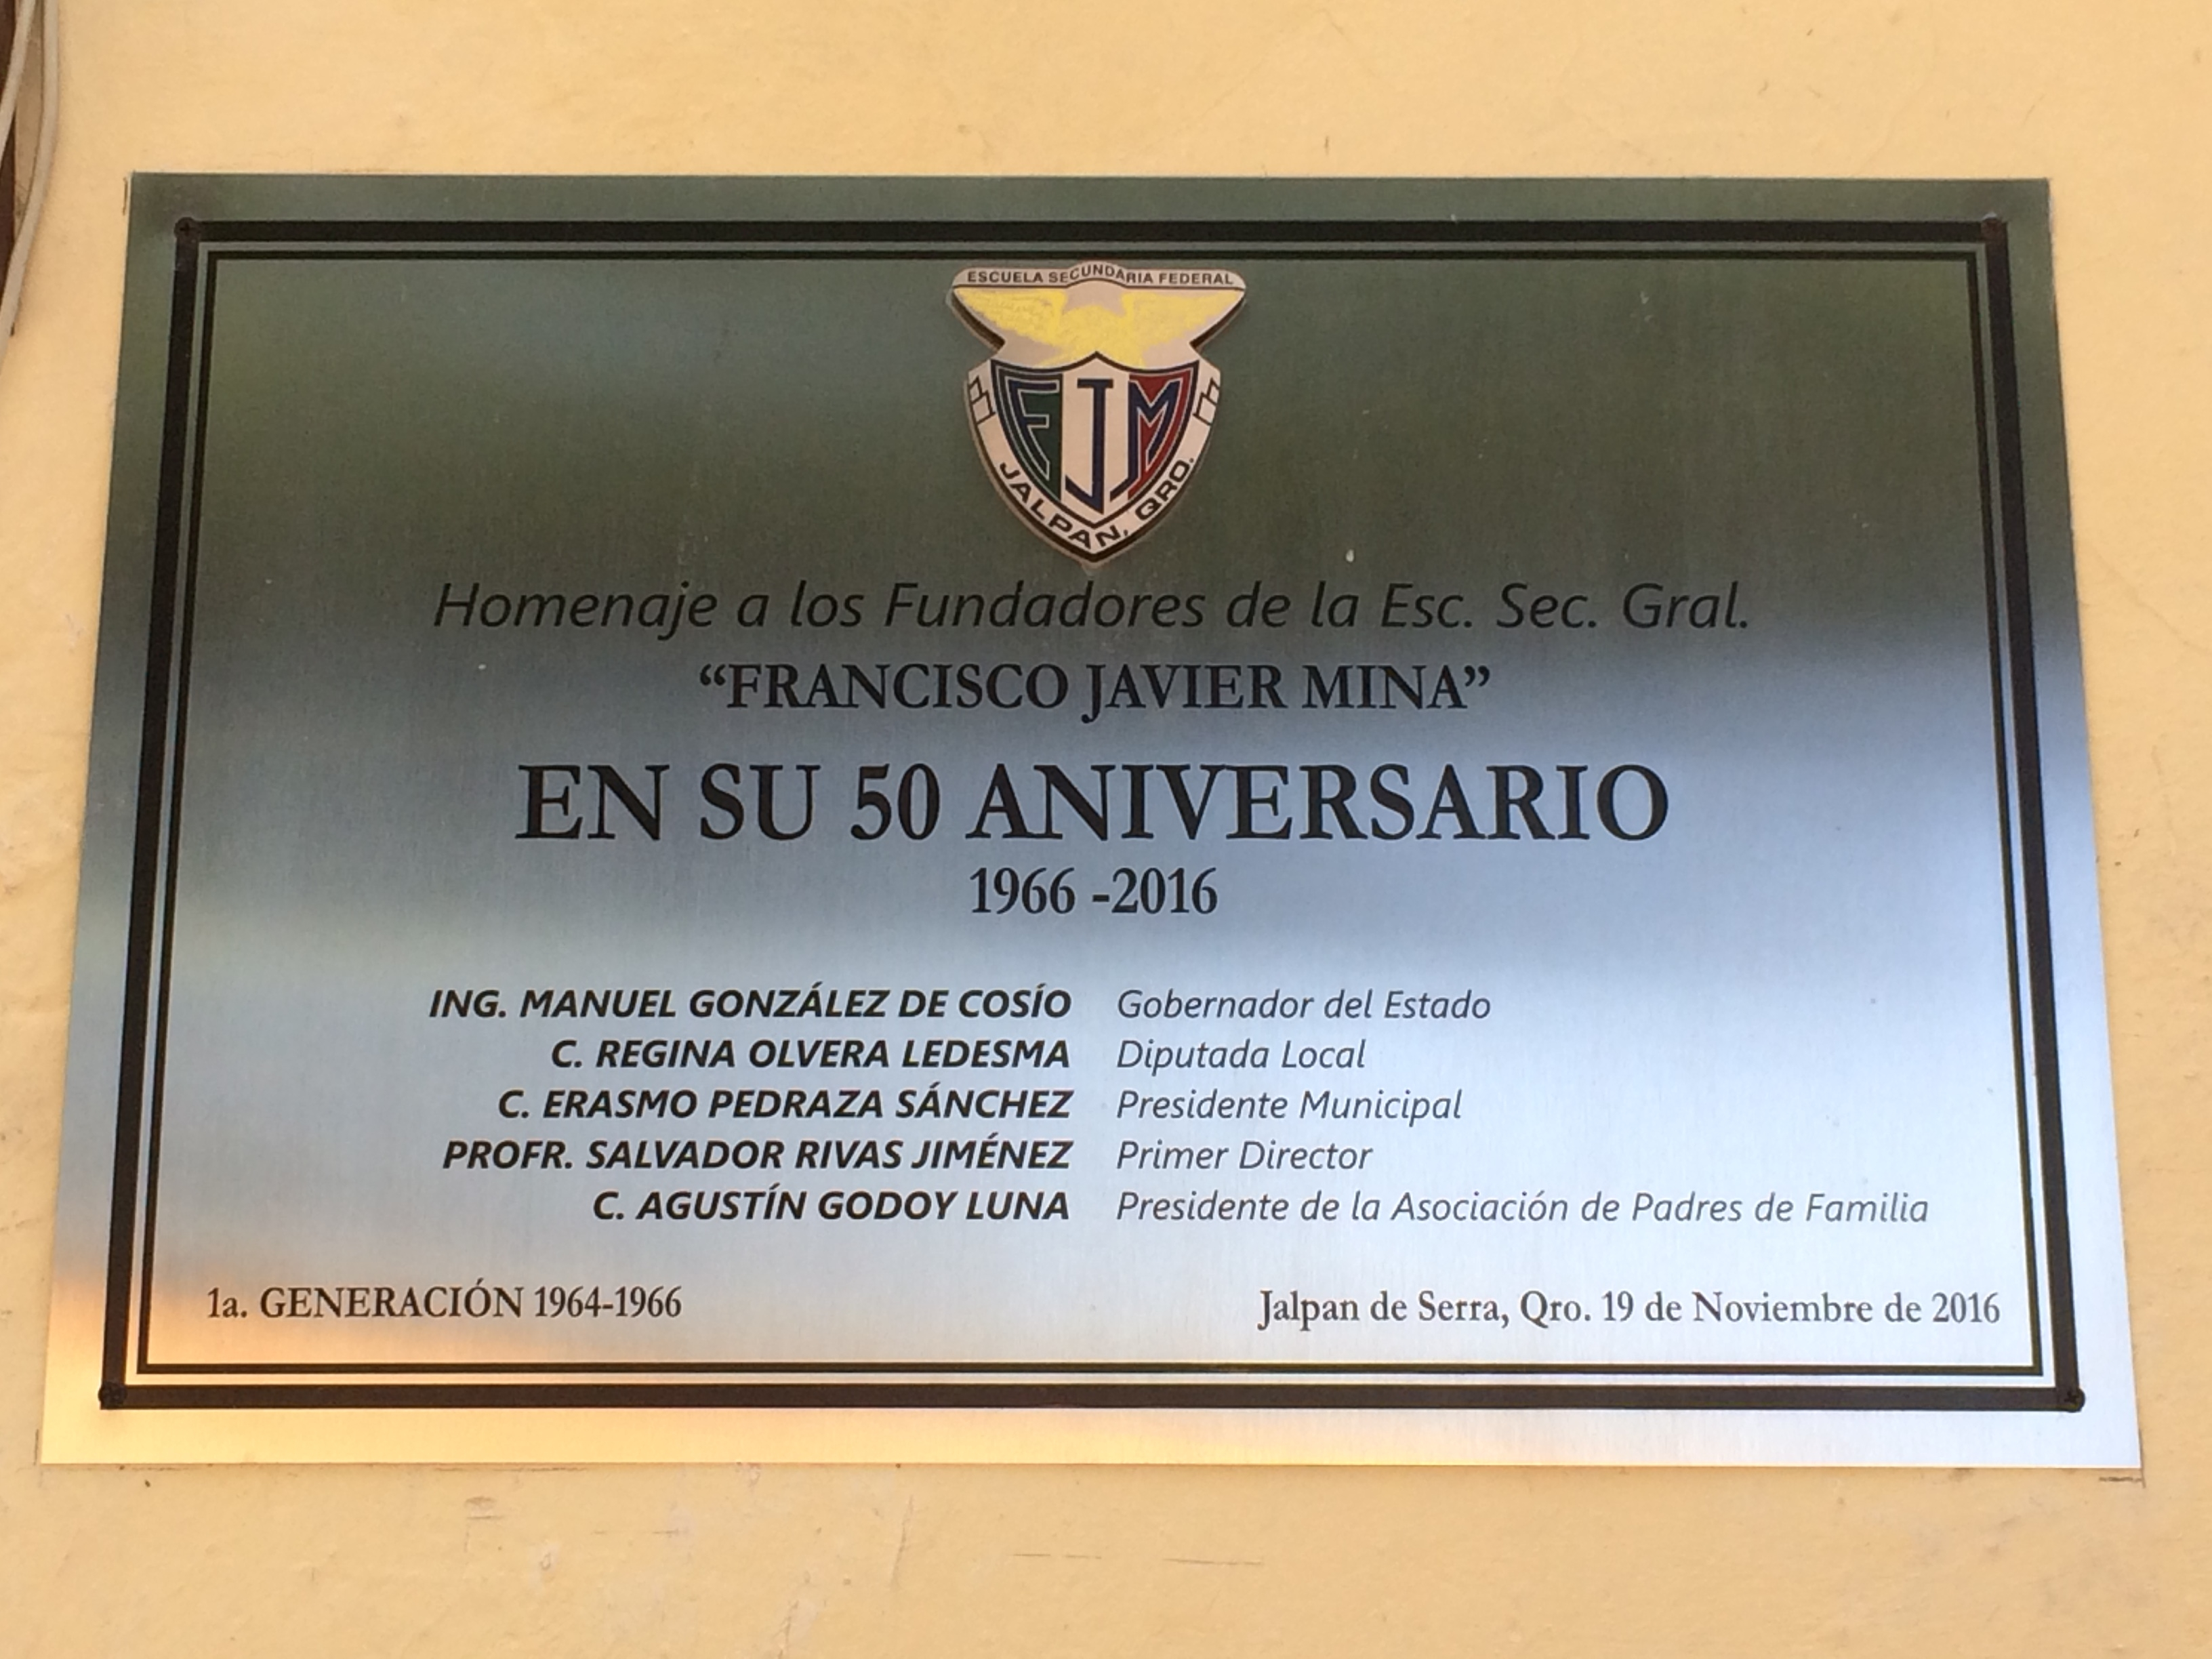 An additional Francisco Javier Mina Federal Secondary School Marker